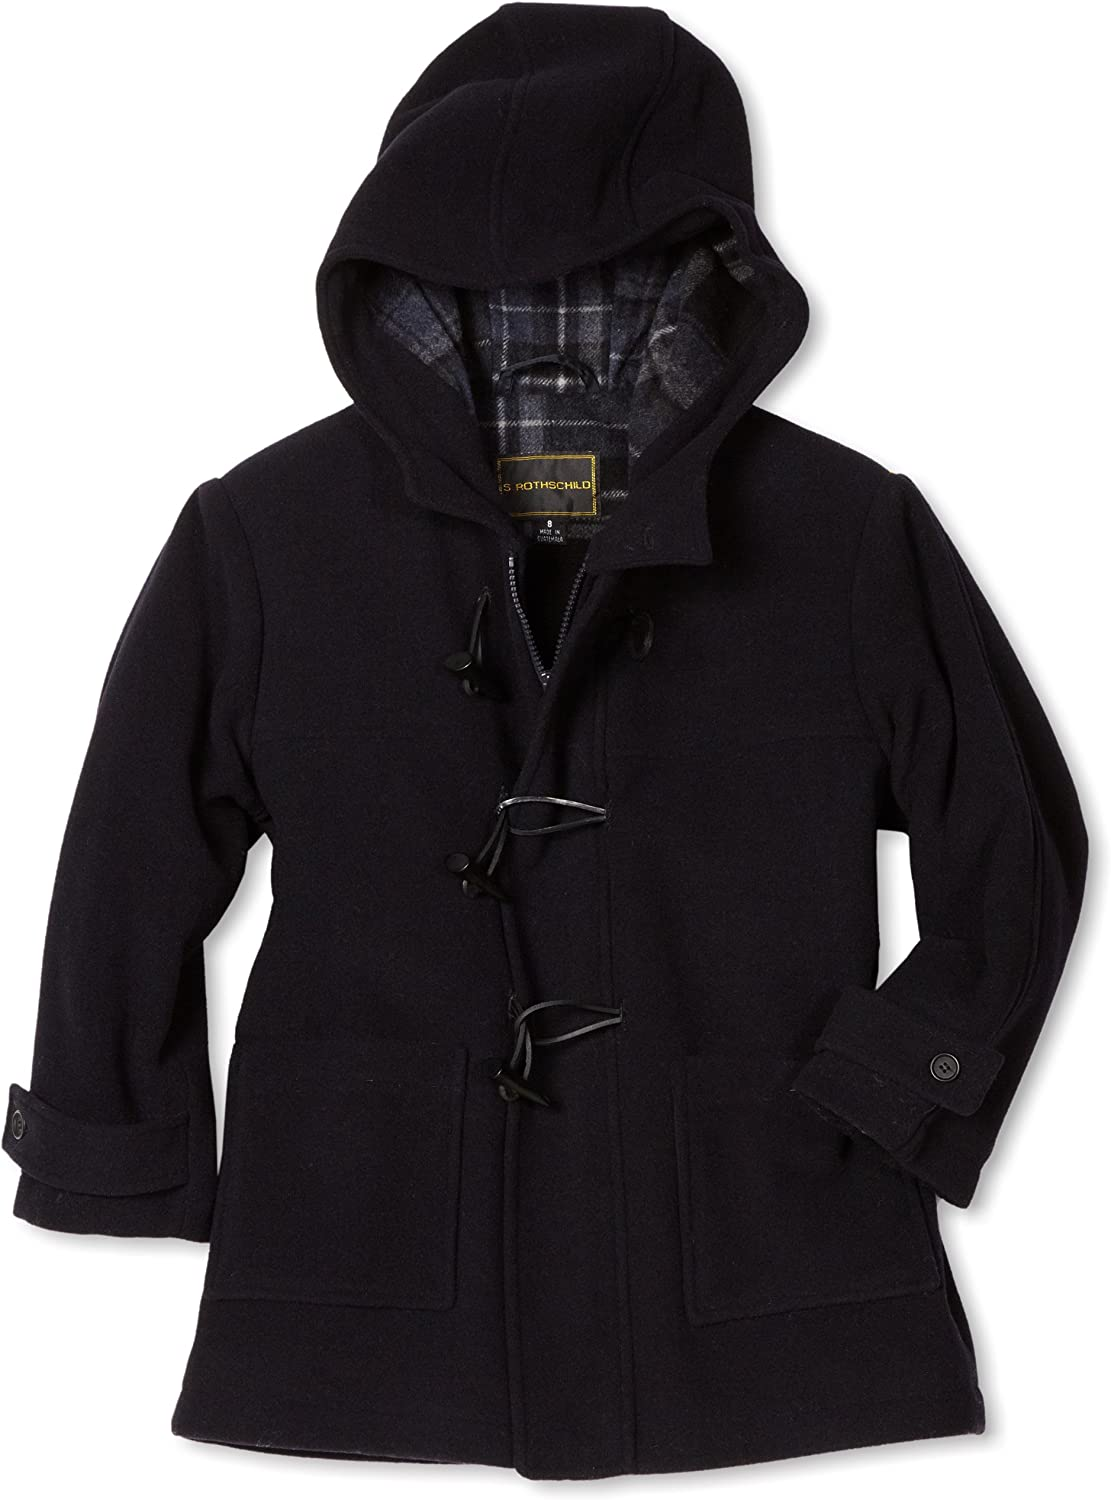 Rothschild Big Boys' Wool Coat Duffle Sales of SALE items from new works trend rank